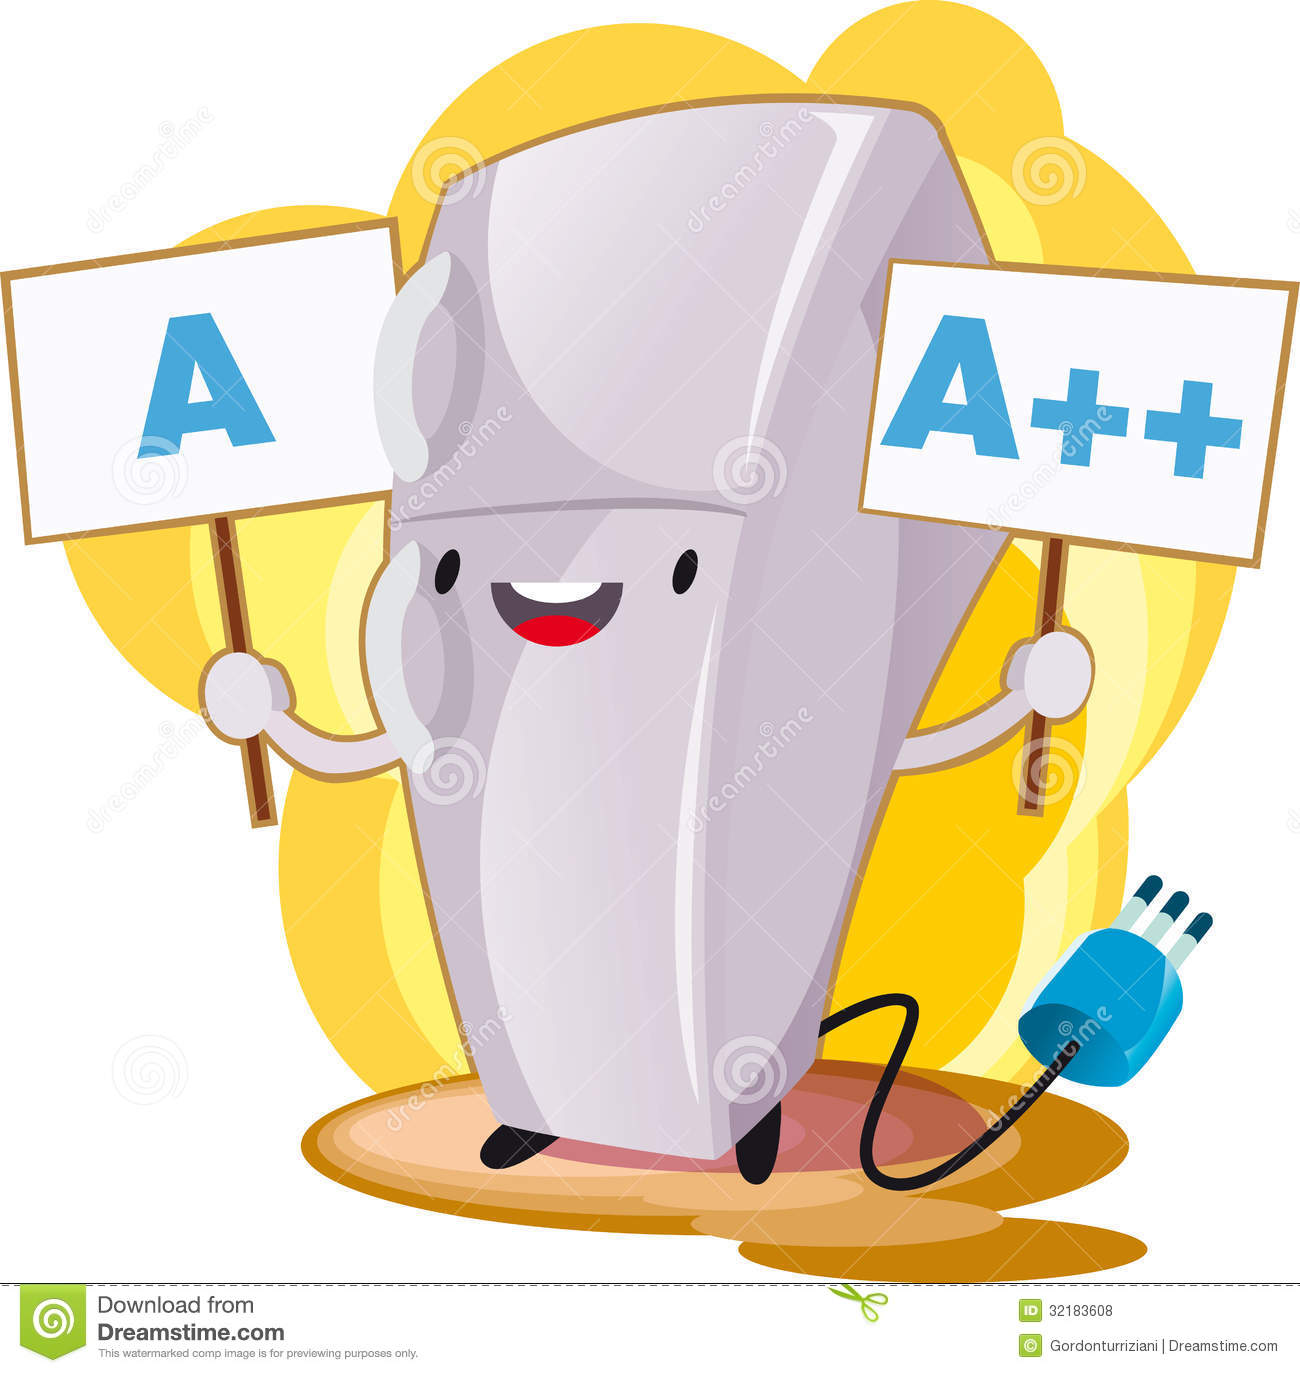 cleaning fridge clipart - photo #17